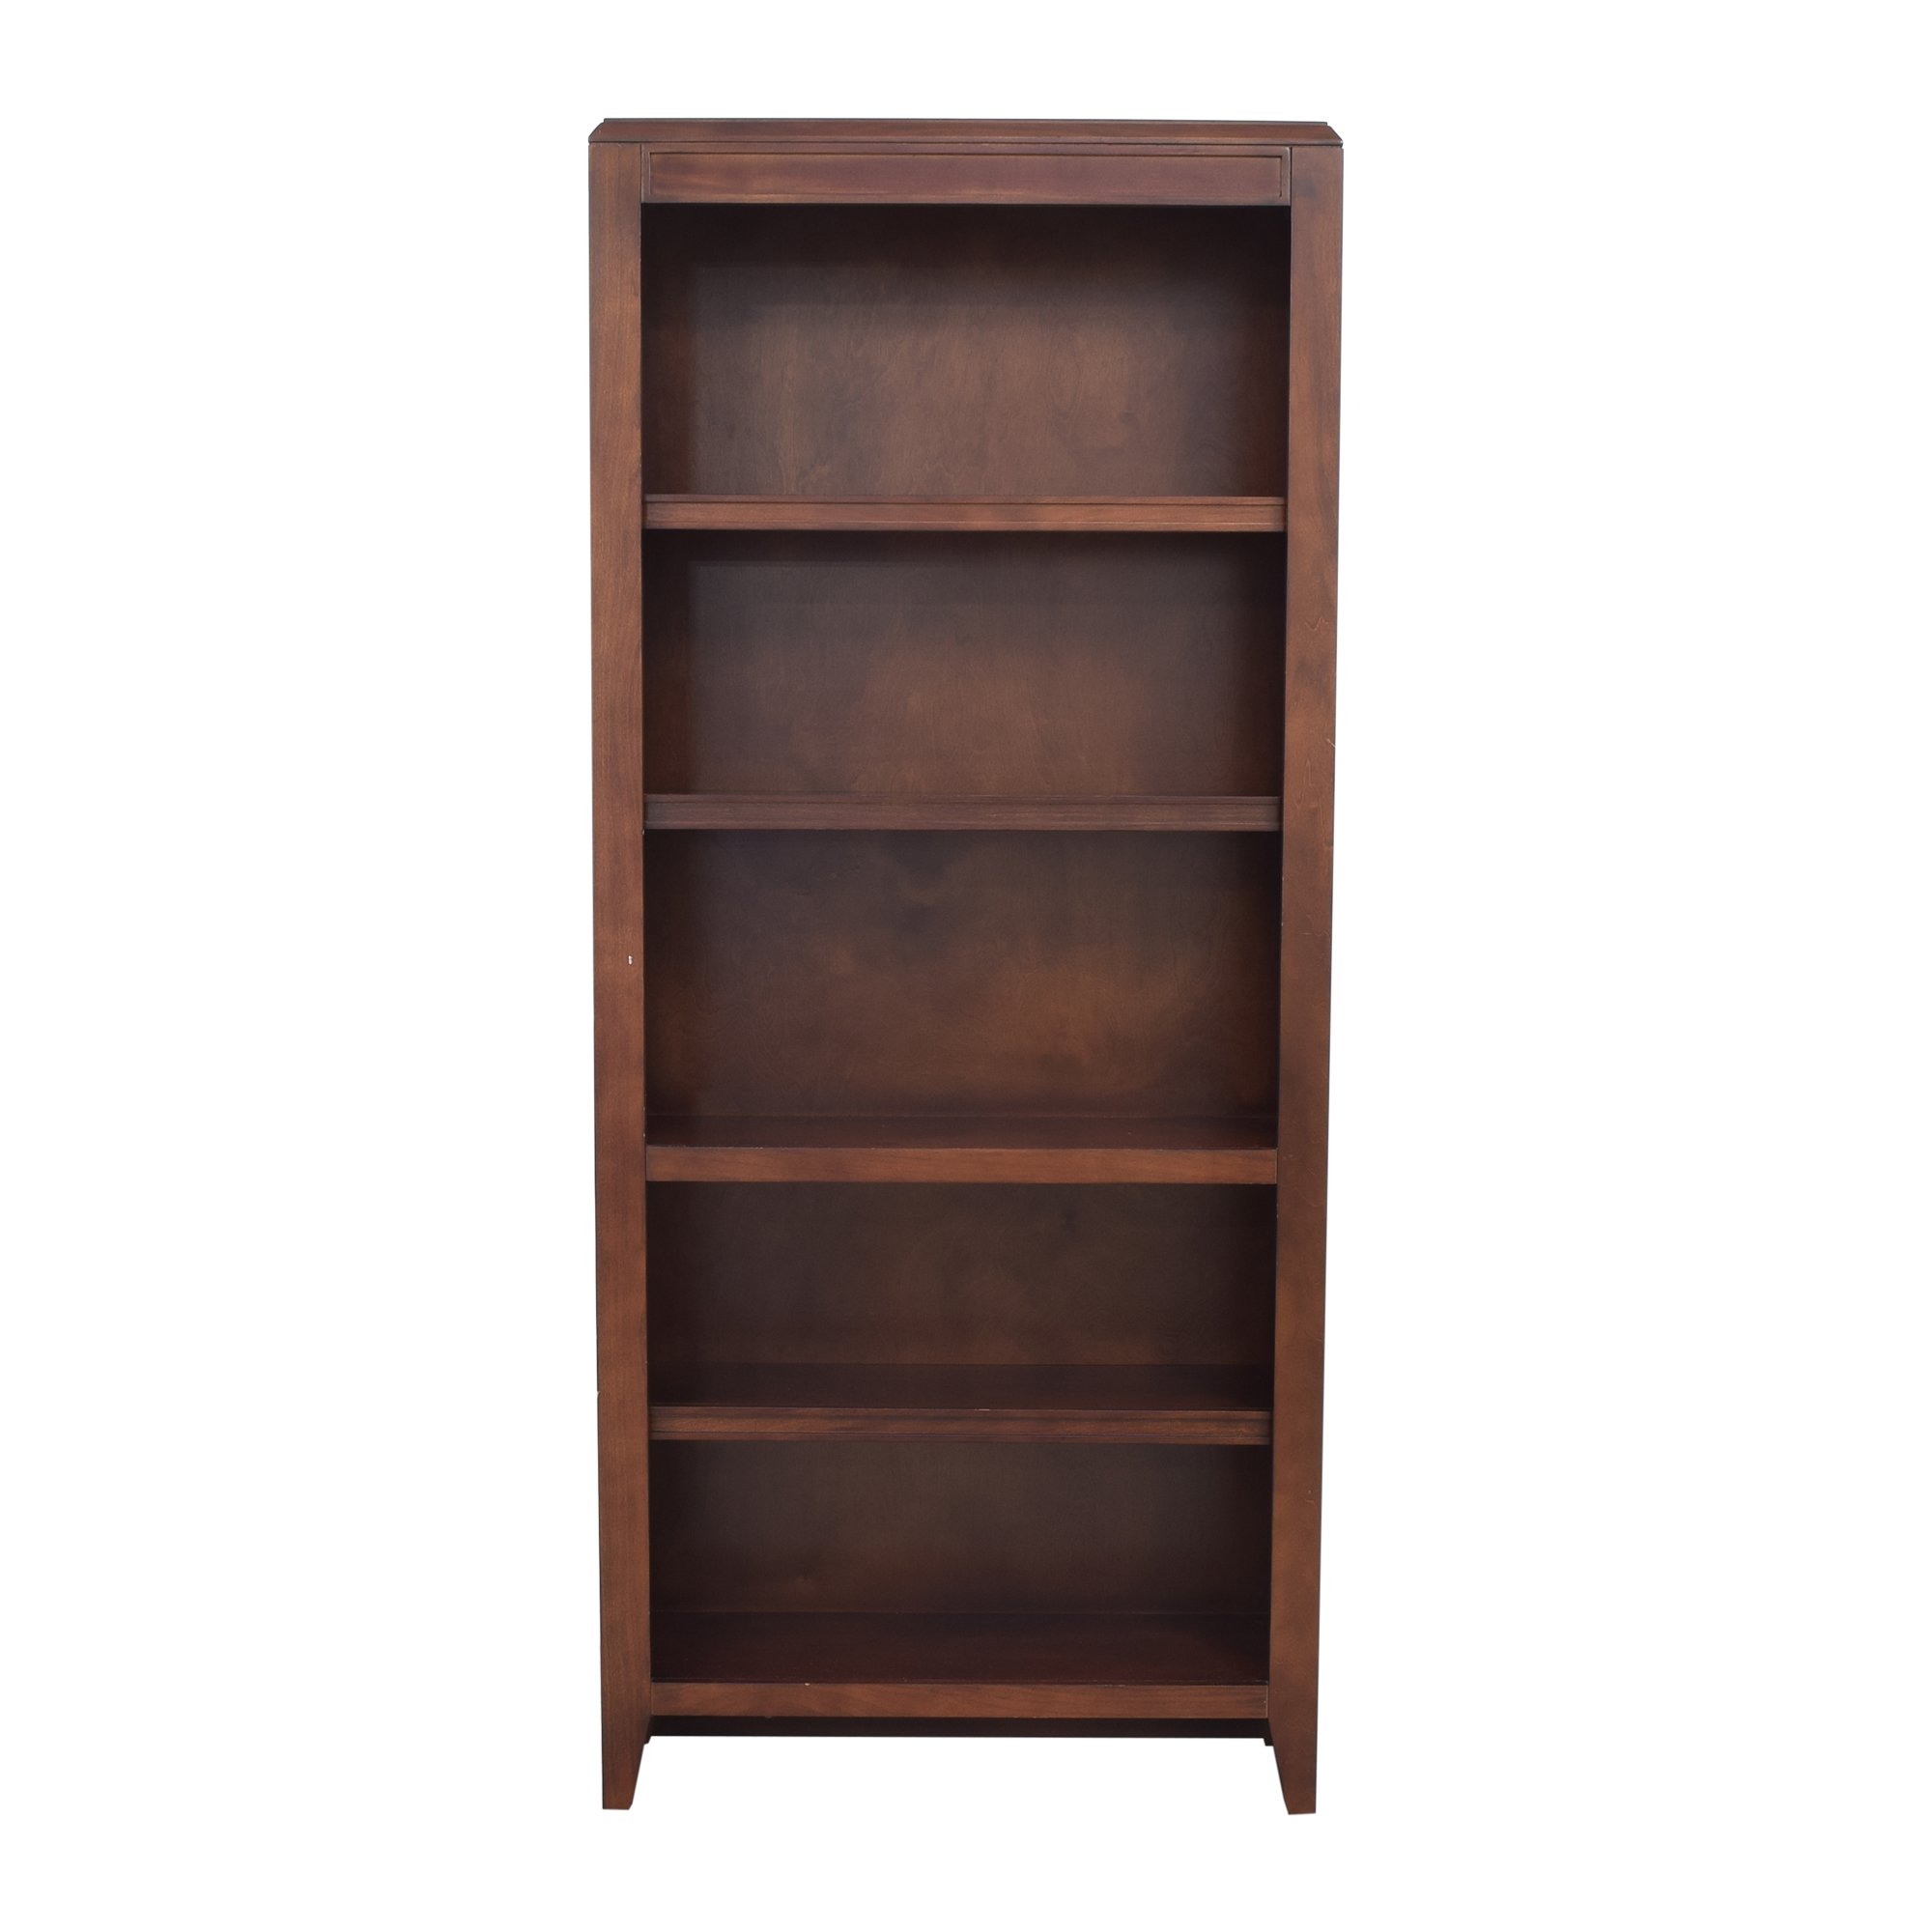 Raymour & Flanigan Raymour & Flanigan Tall Bookcase Bookcases & Shelving